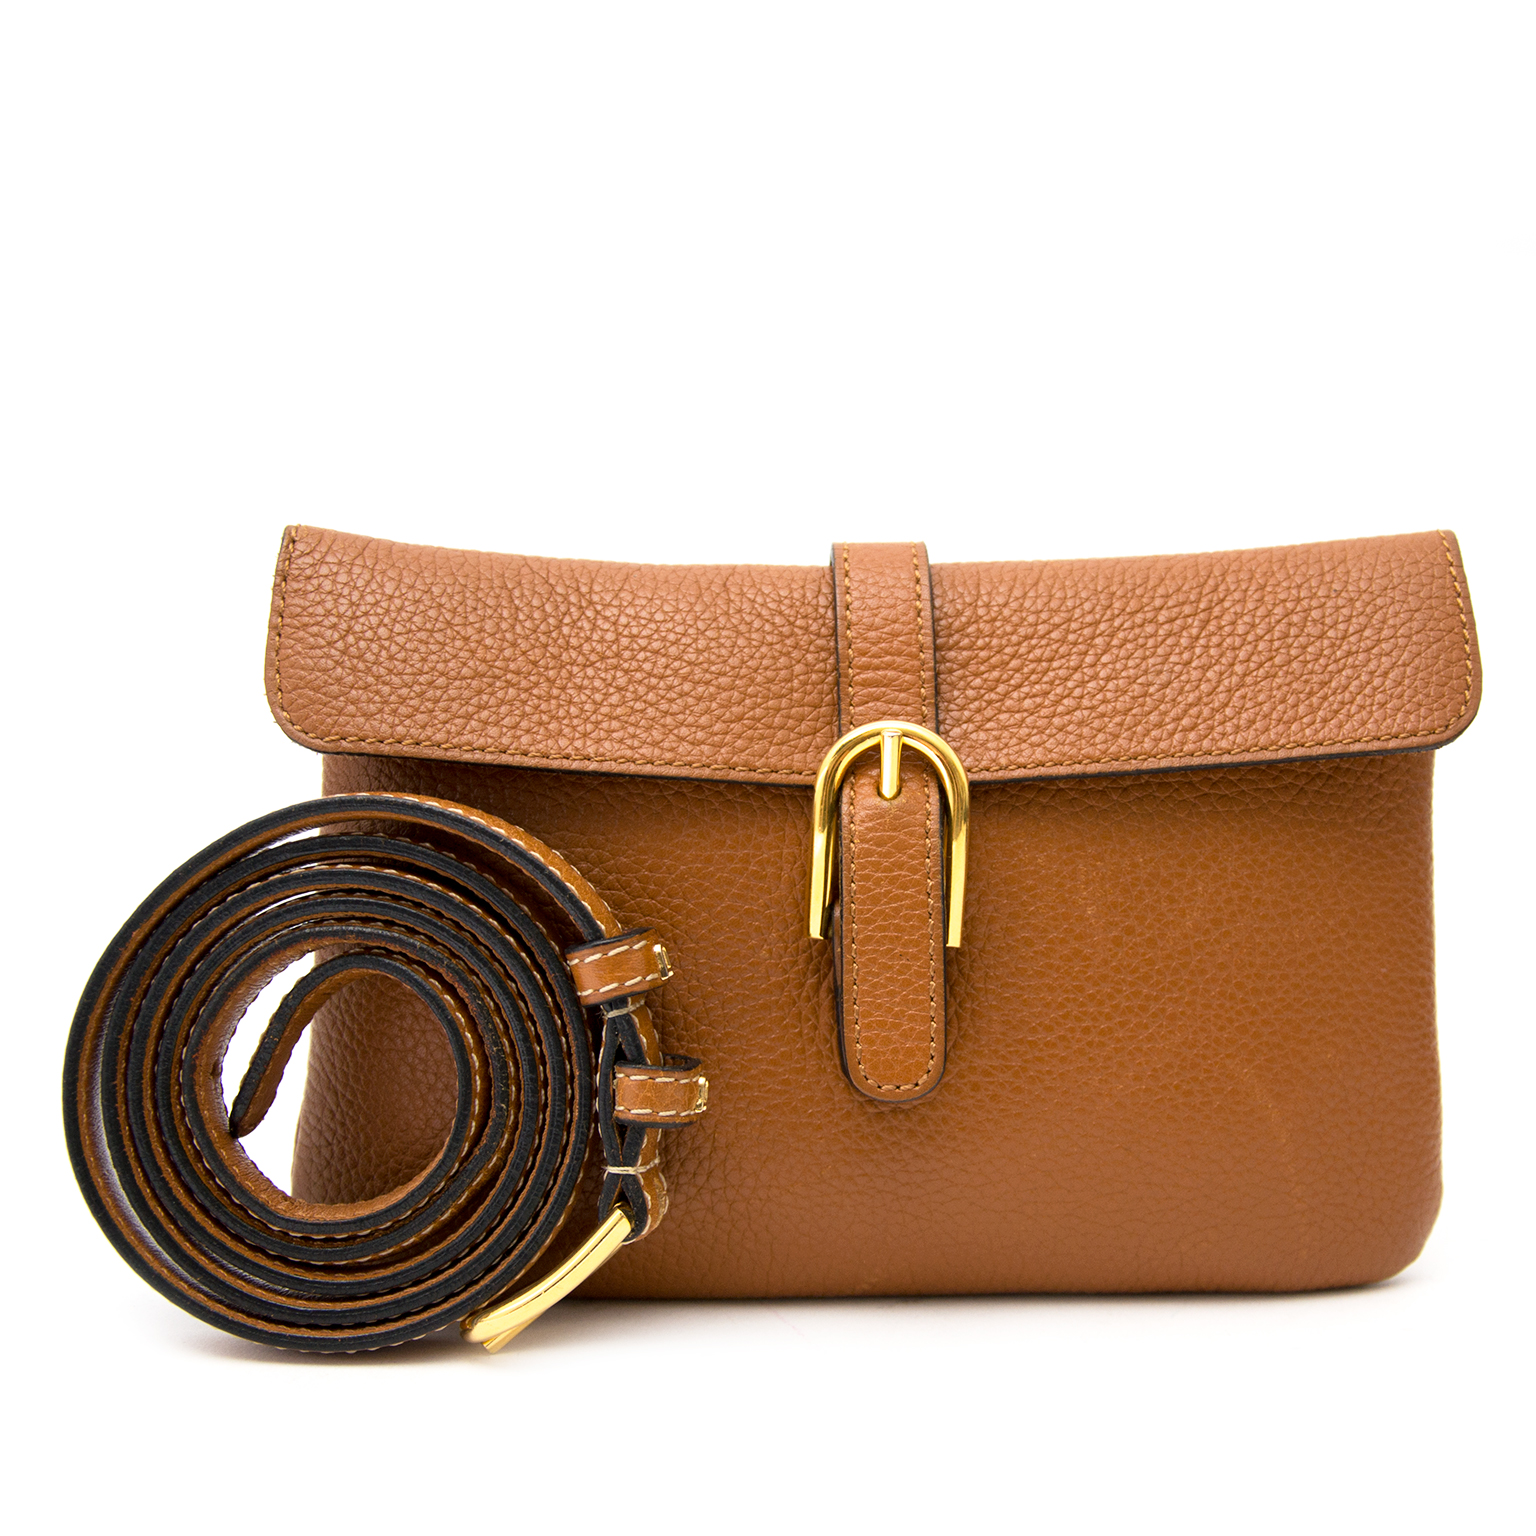 Delvaux Camel Belt Bag at the best price 2017